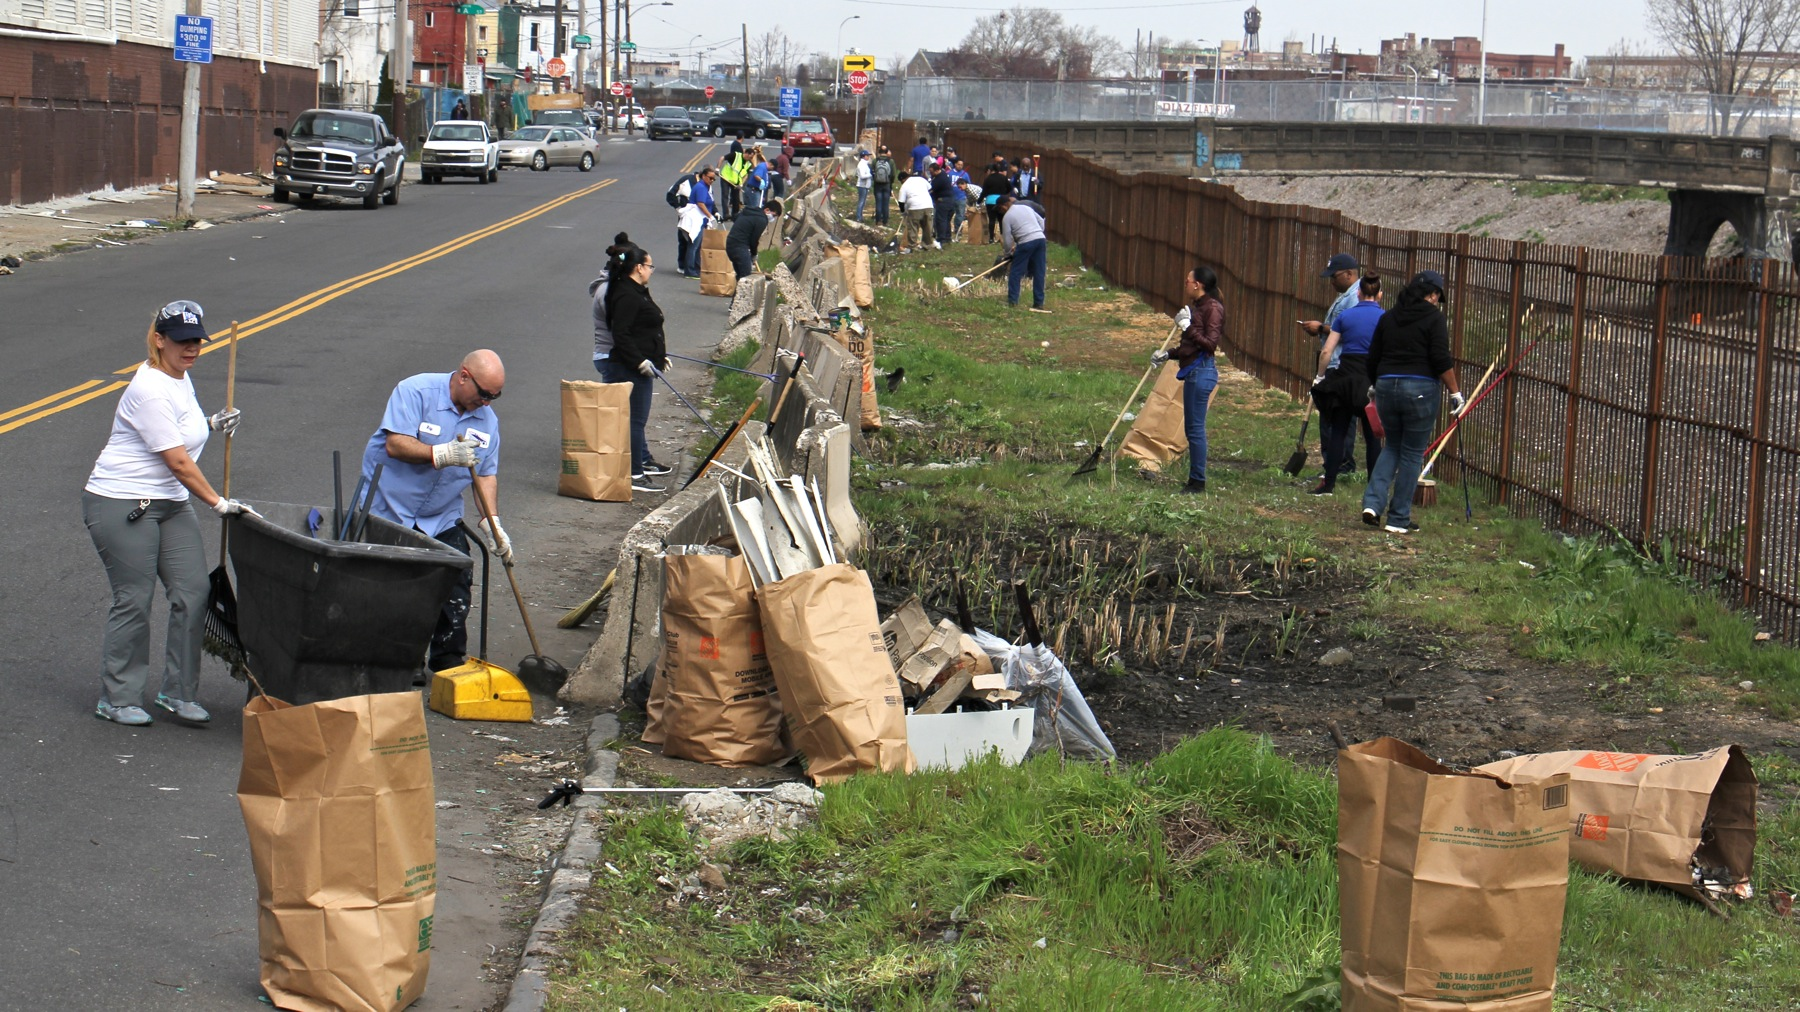 Workers and volunteers clean up trash in preparation for a new greenway alongside the former site of a notorious Kensington heroin encampment. (Emma Lee/WHYY)